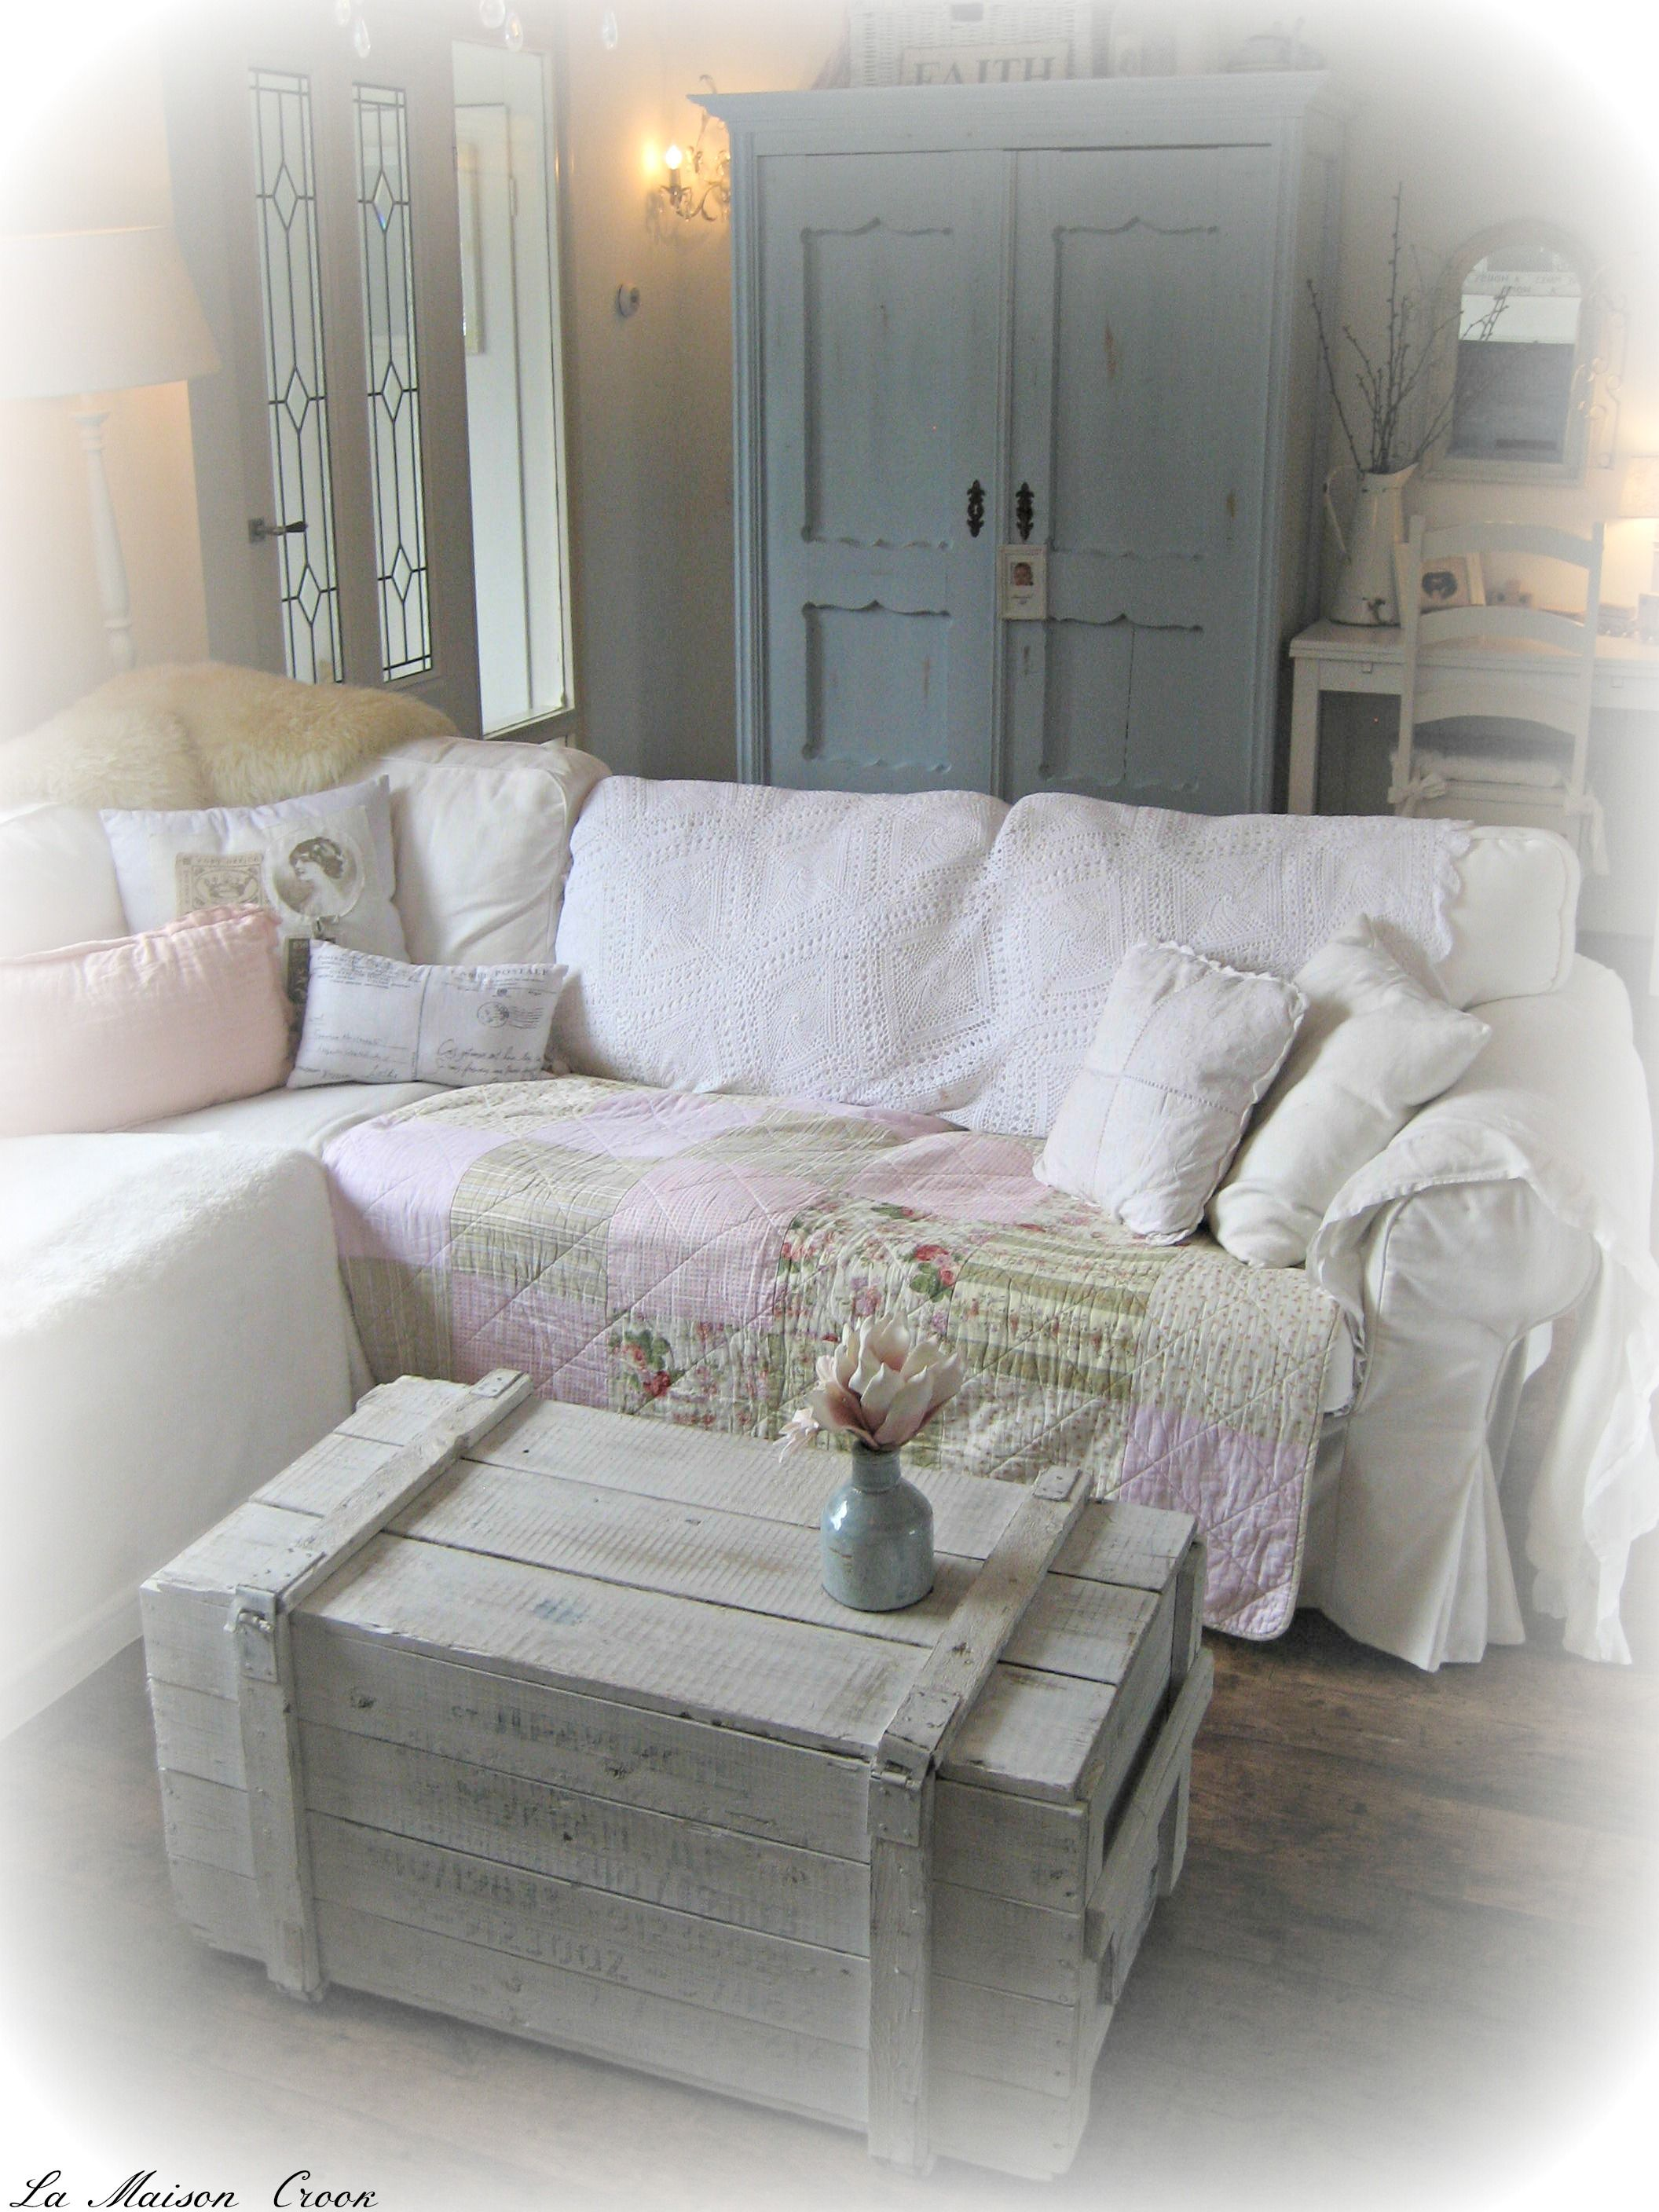 Shabby Chic Lounge Furniture: Brocante Woonkamer / Shabby Chic Living Room